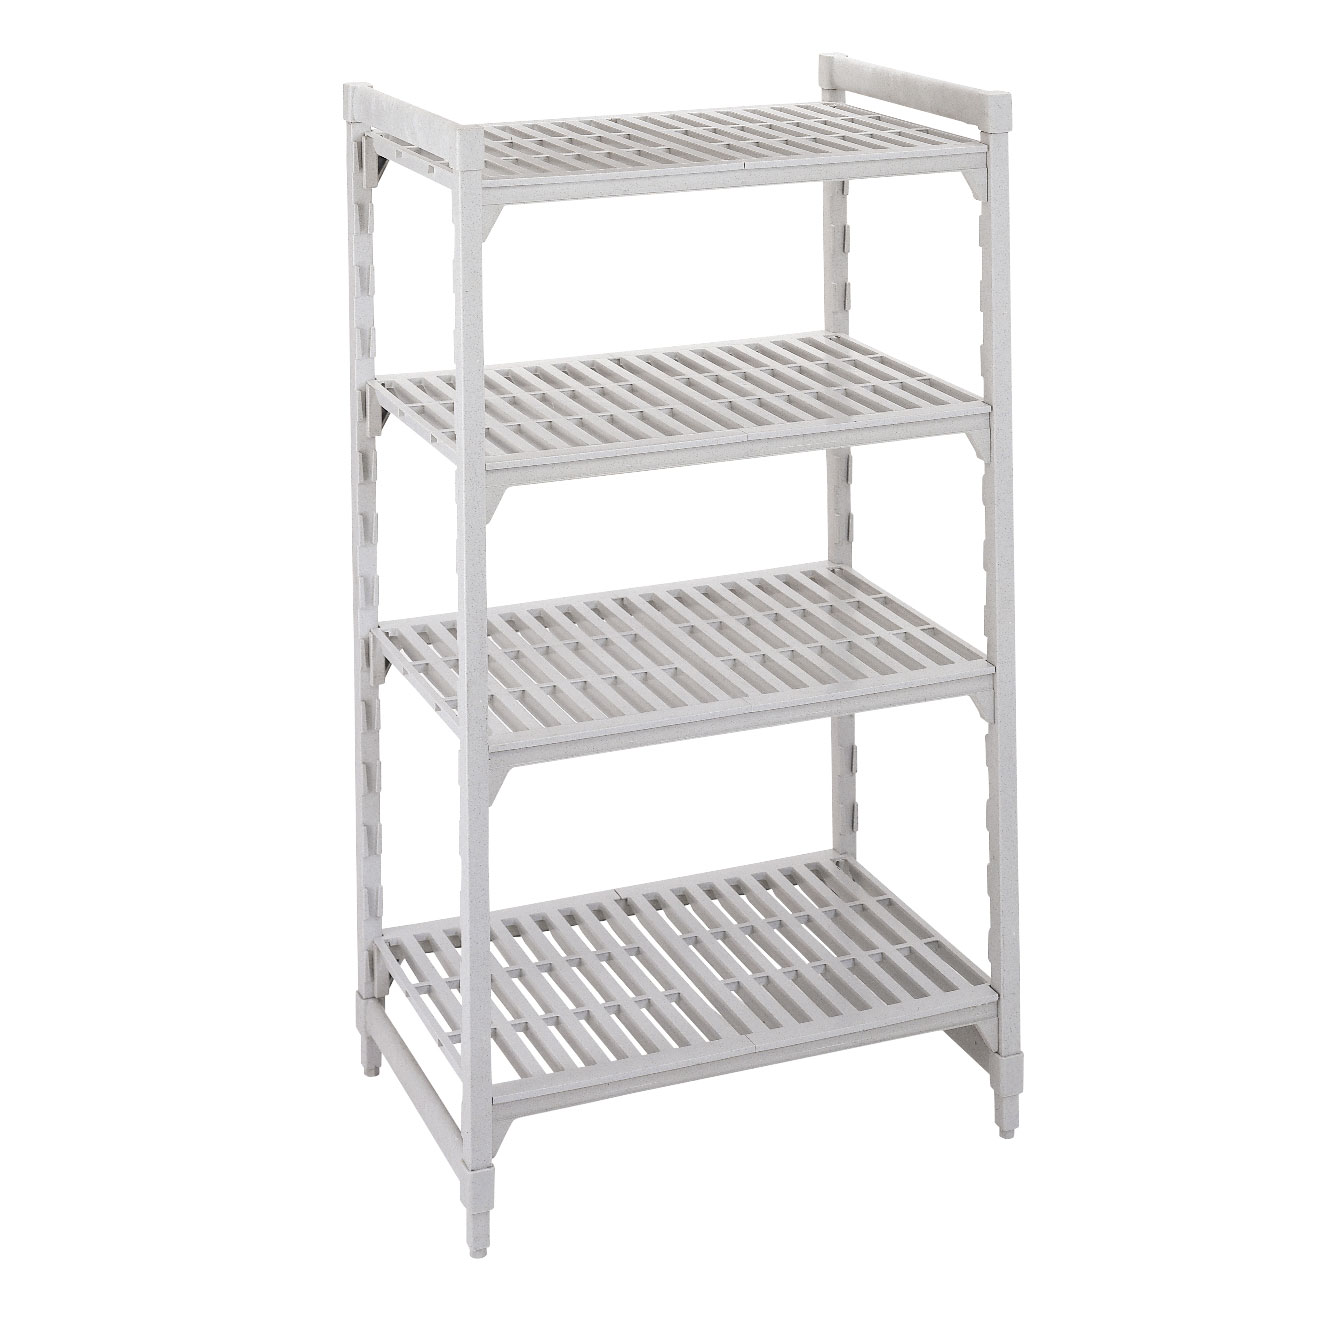 CPU183672V4480 Cambro shelving unit, plastic with poly exterior steel posts